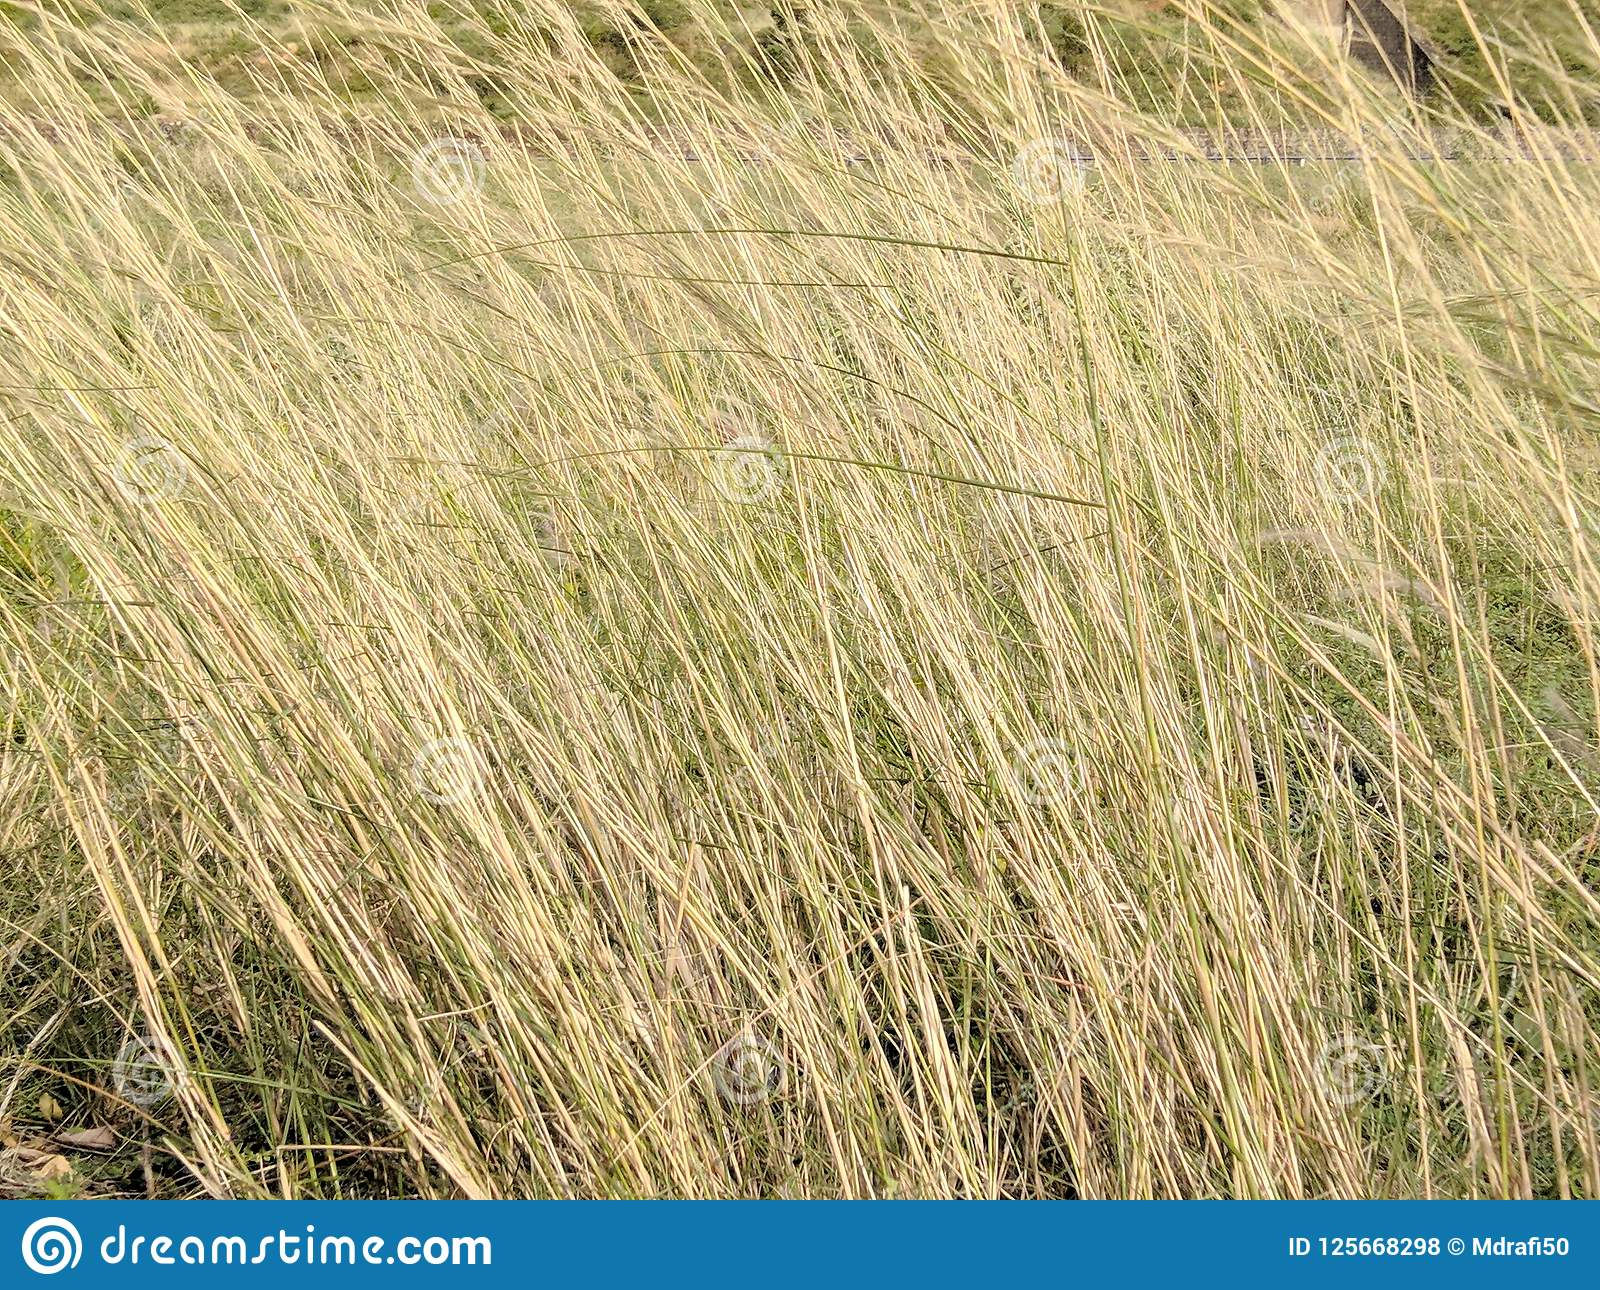 wild grass texture. Download Dry Tall Grass Texture Stock Photo. Image Of - 125668298 Wild